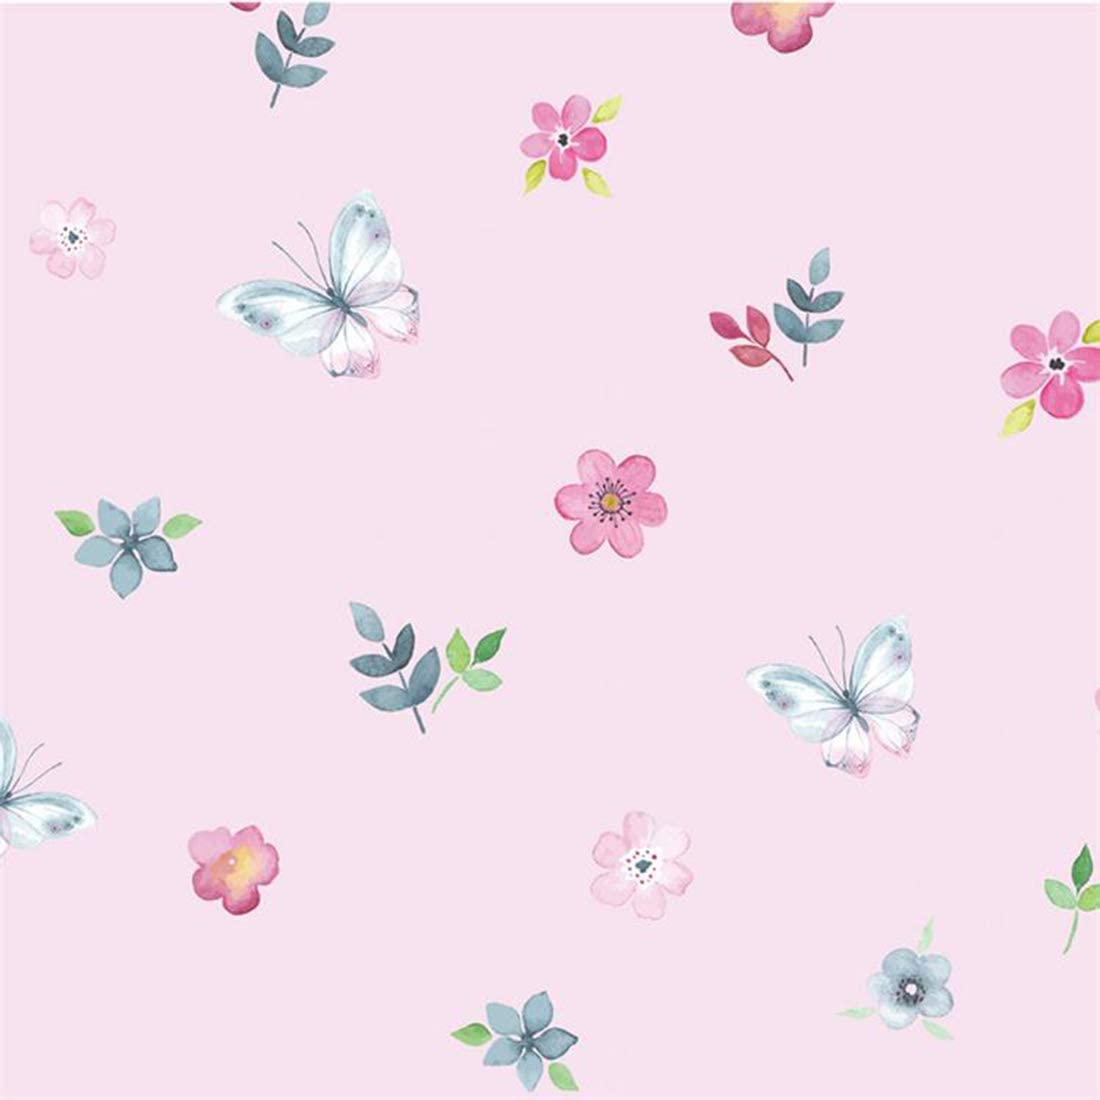 Decorative Floral Butterfly Pattern Contact Paper Self Adhesive Shelf Drawer Cabinets Liner Arts and Crafts Vinyl Paper (Pink, 17.7x78.7 Inches)